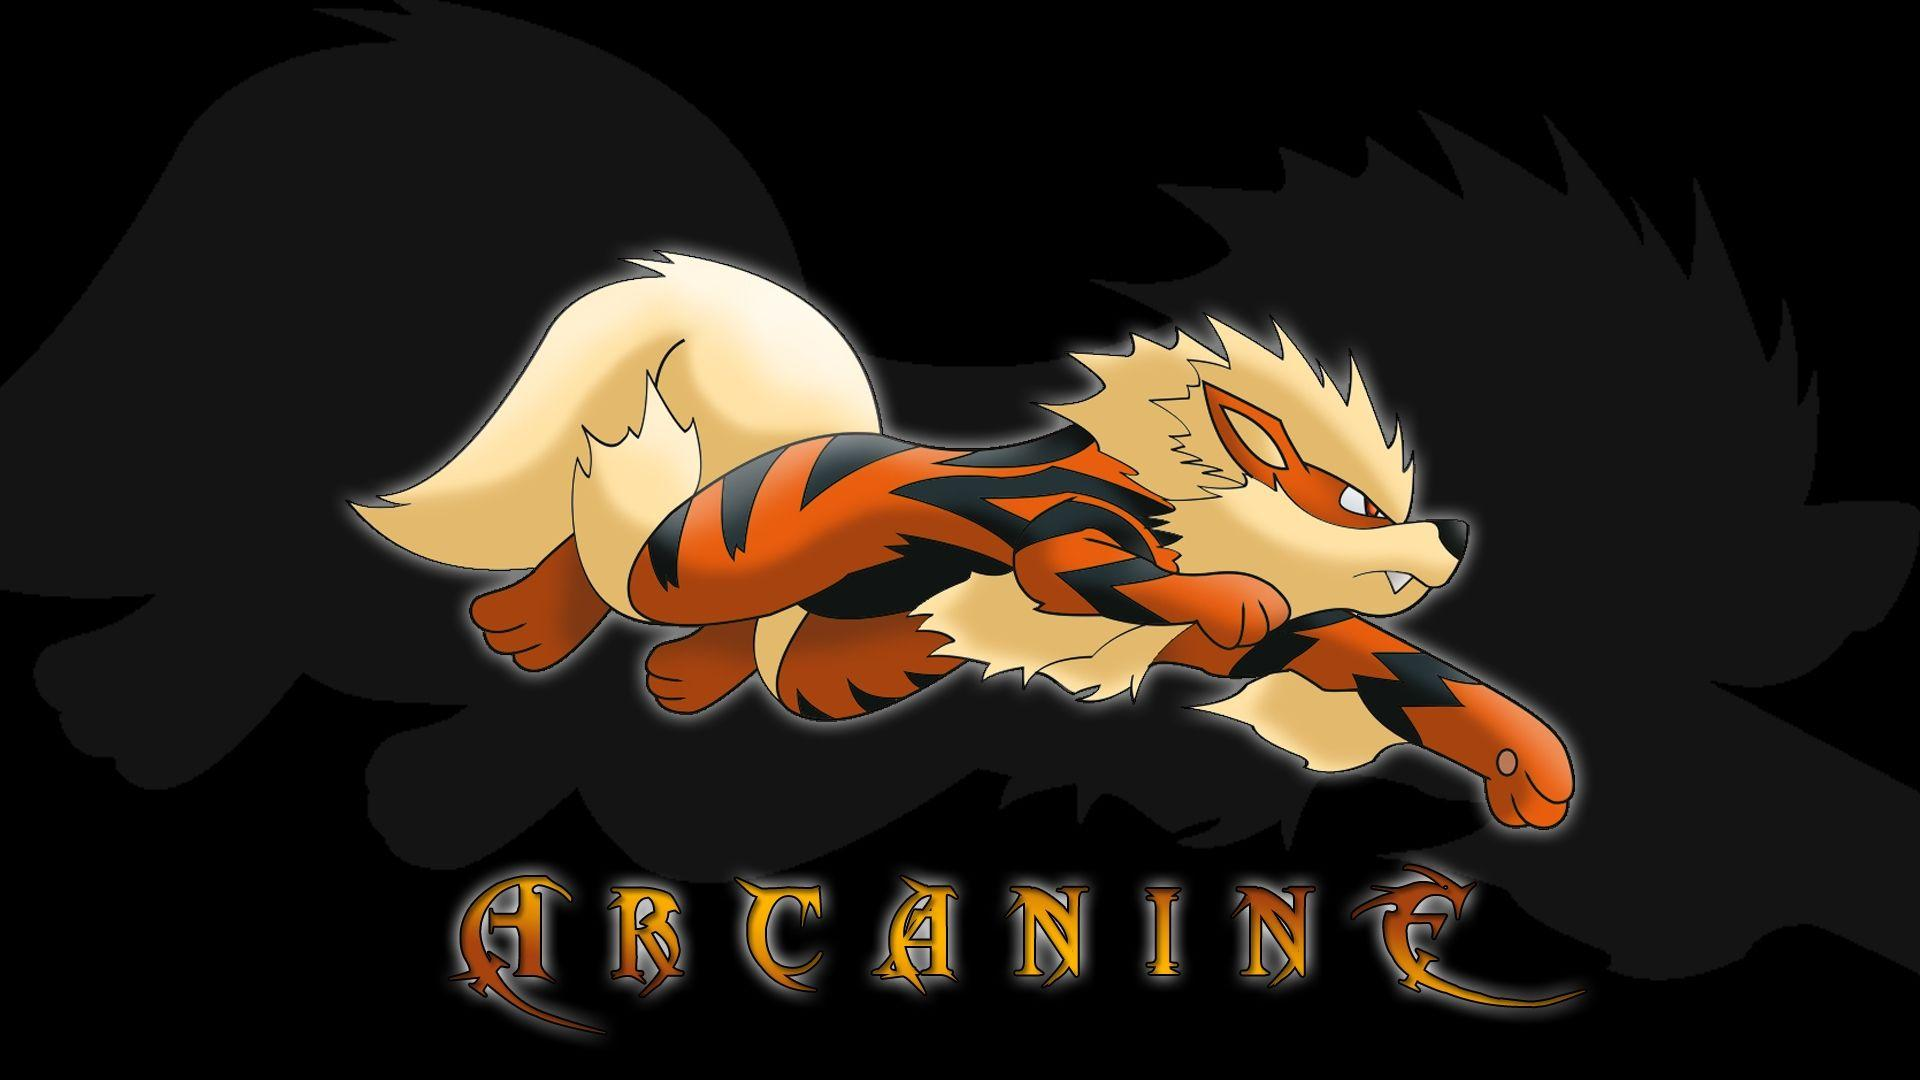 Arcanine Wallpaper, Animals HD Wallpaper,Hi Res Animals Wallpaper ...